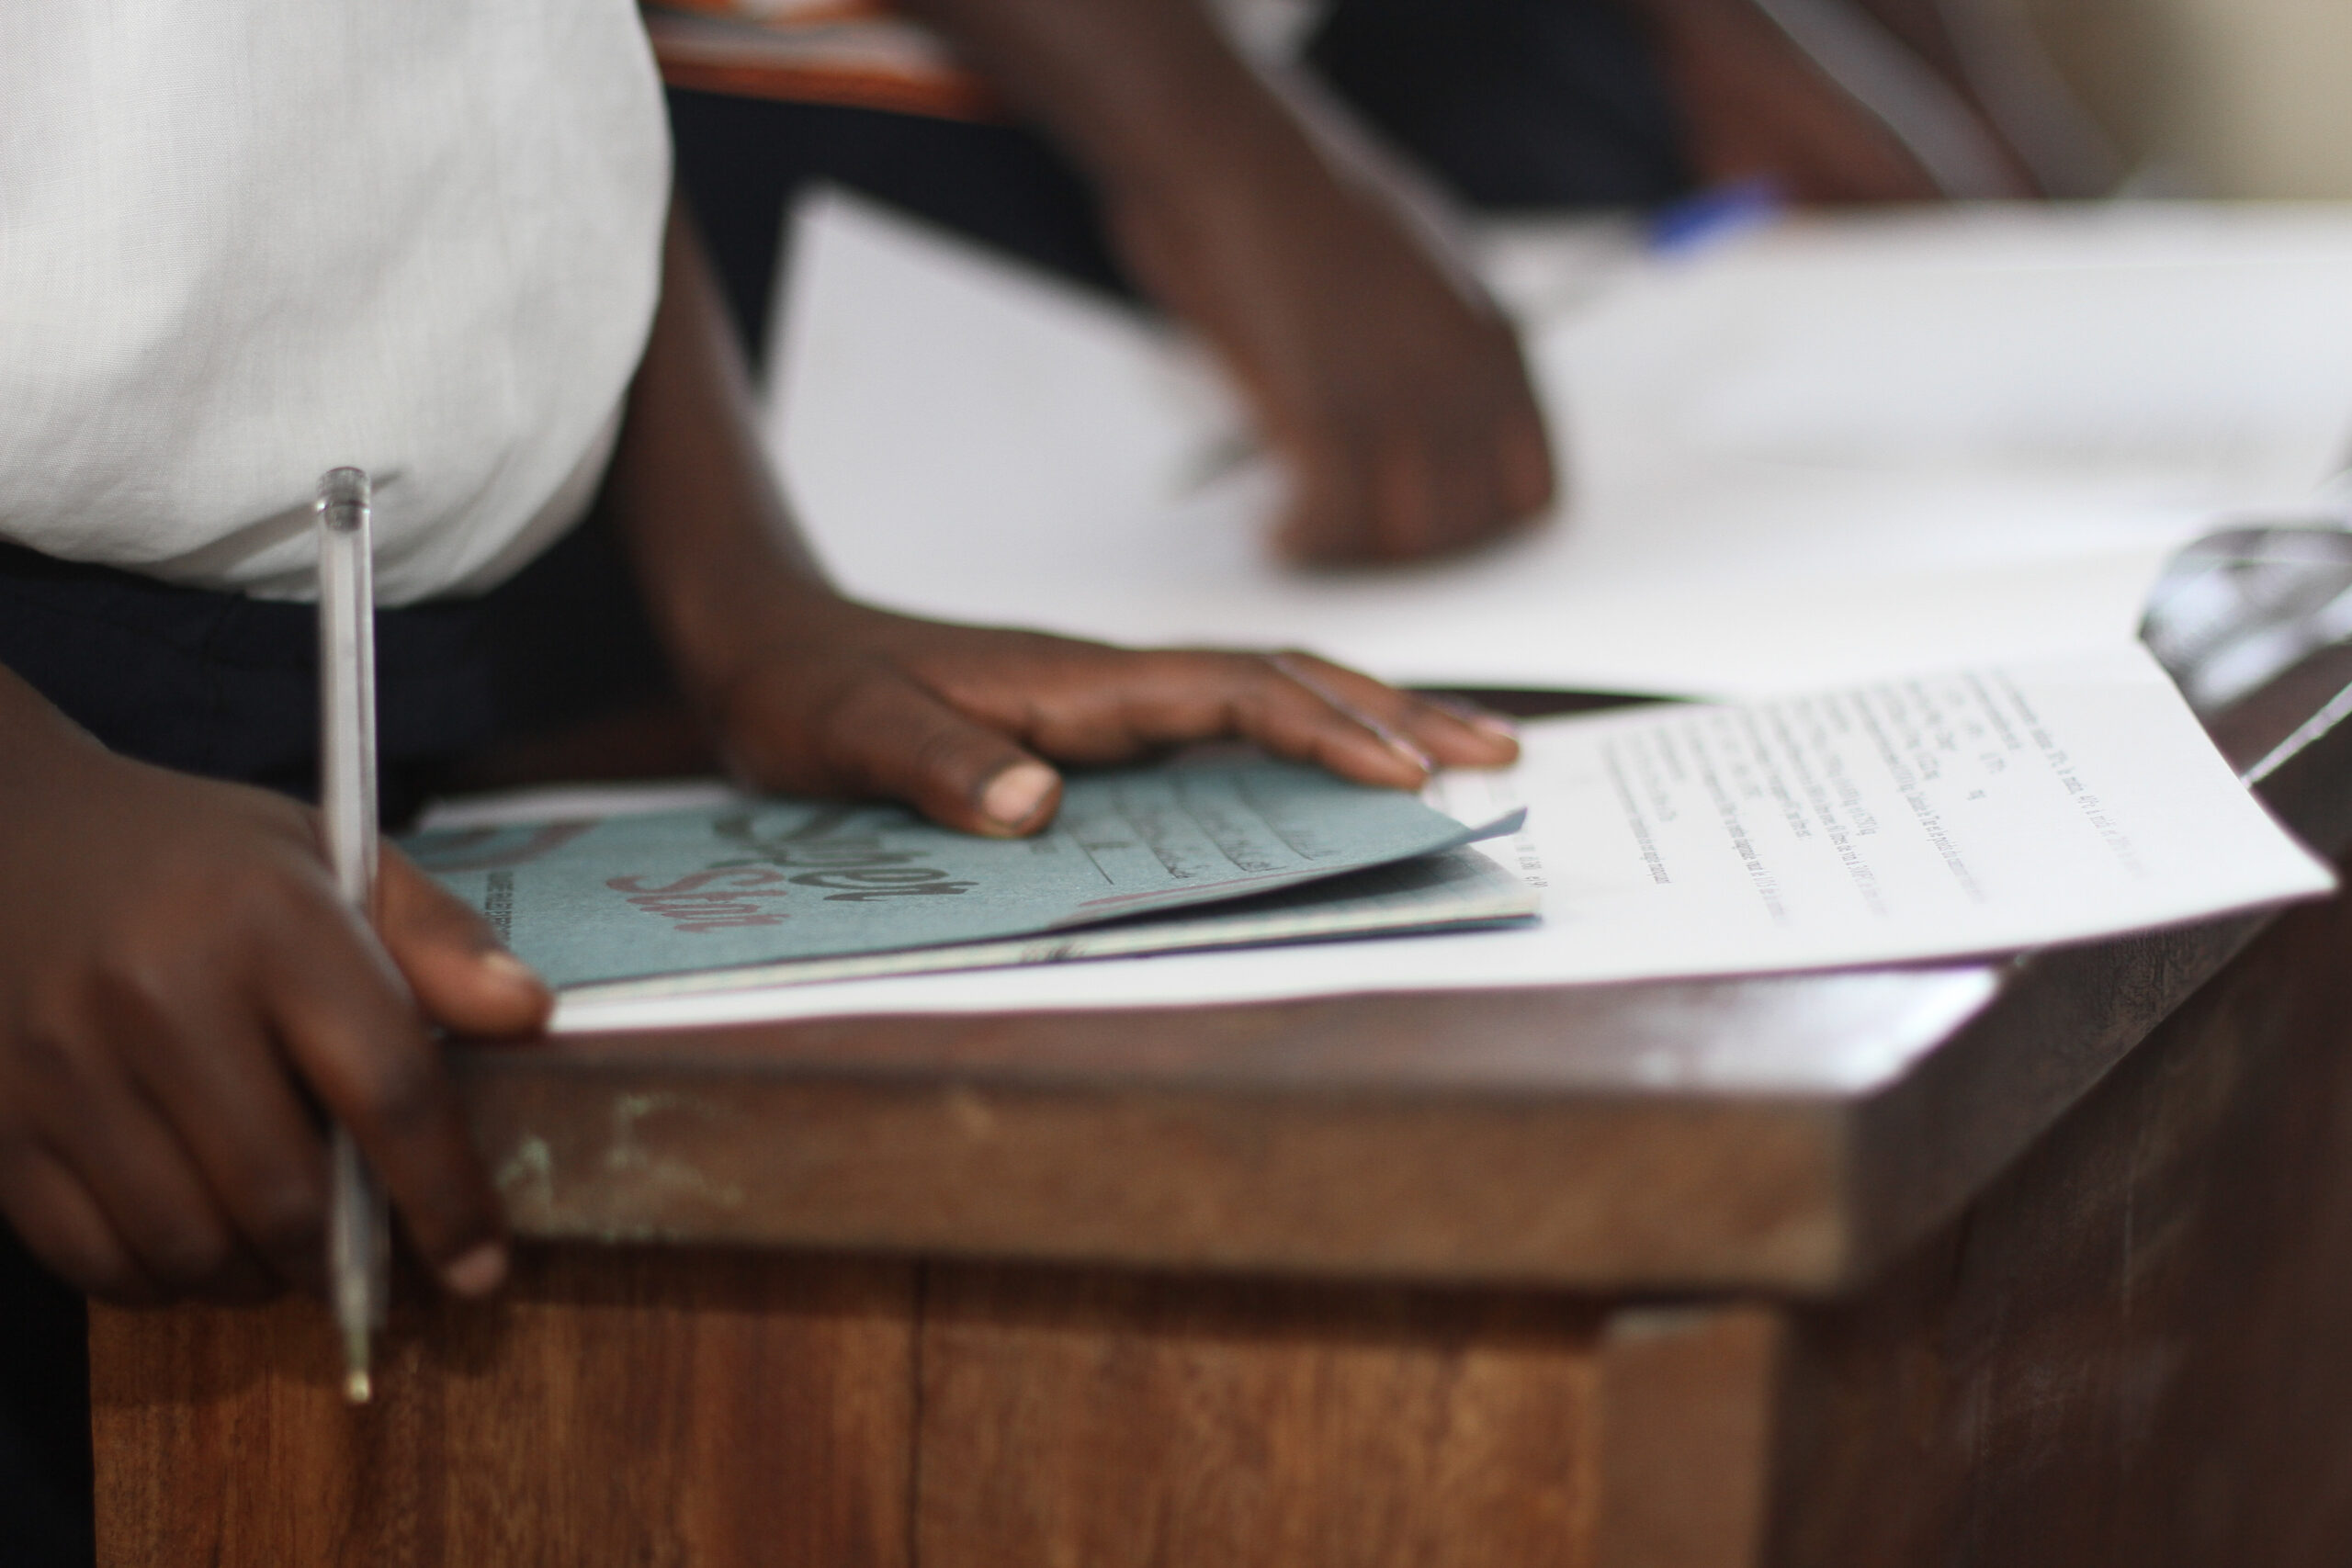 A book on a wooden desk. The child is holding a pen over the book